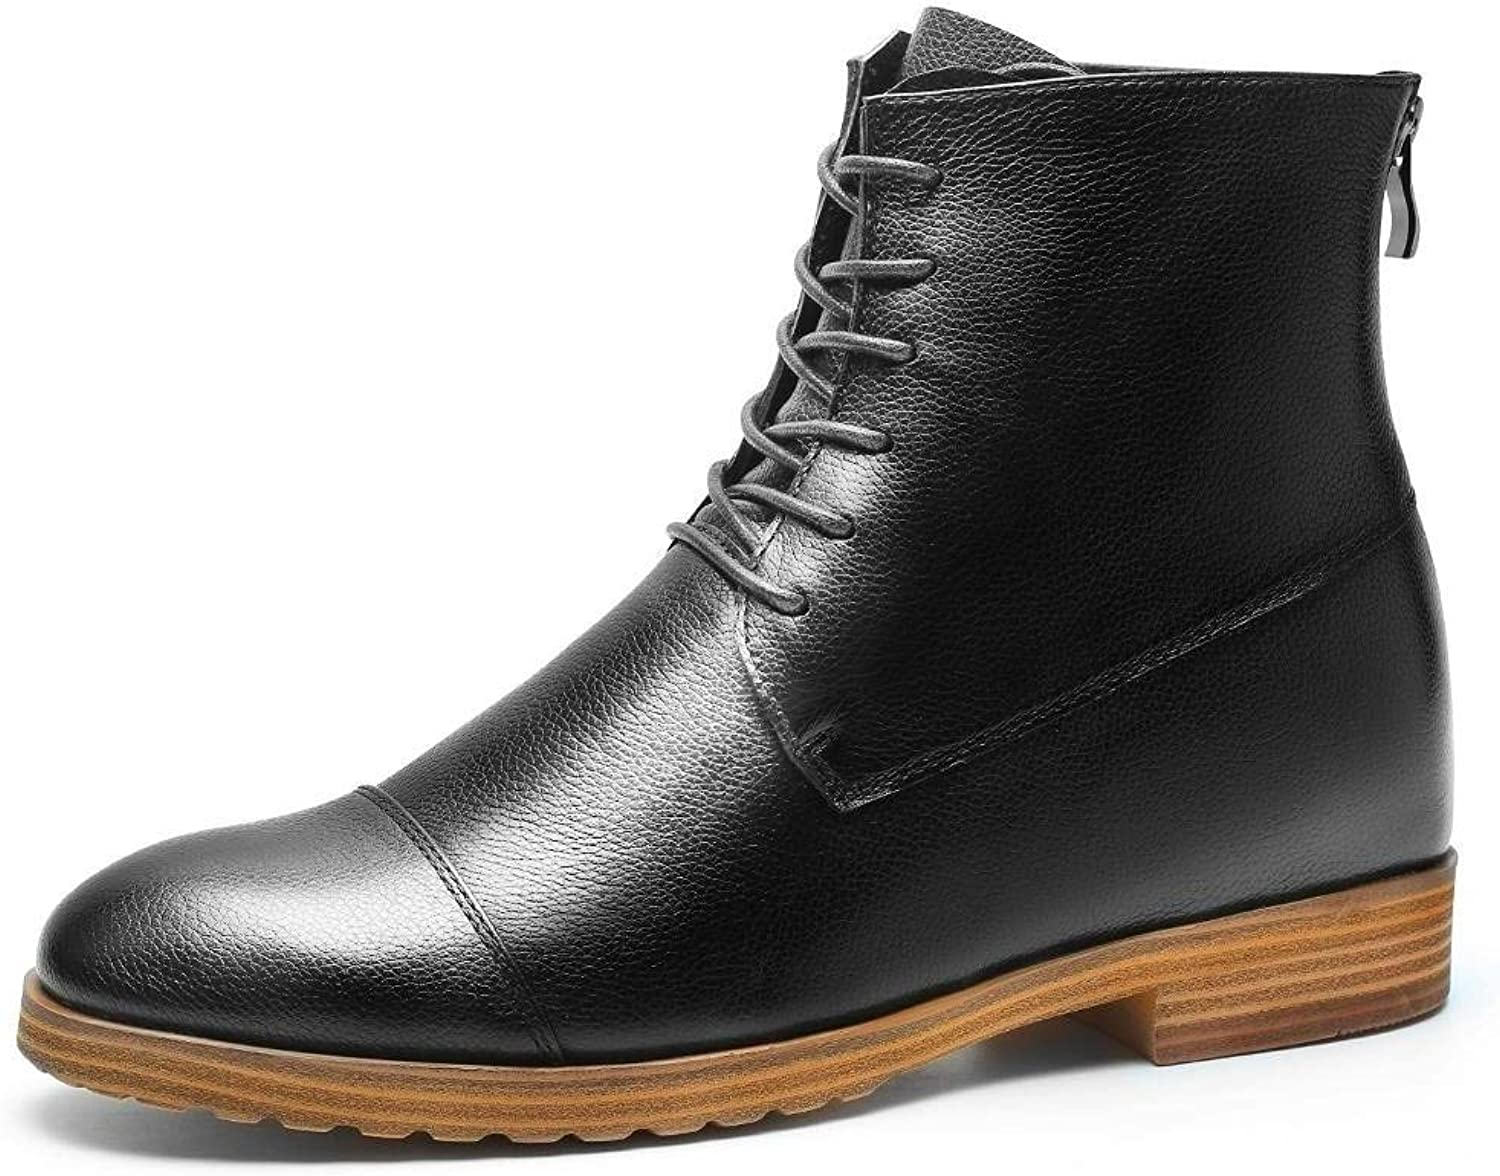 CHAMARIPA Height Increase shoes Elevator Boots Black Leather Chukka Taller 7CM  2.76 Inches H82B51D011D